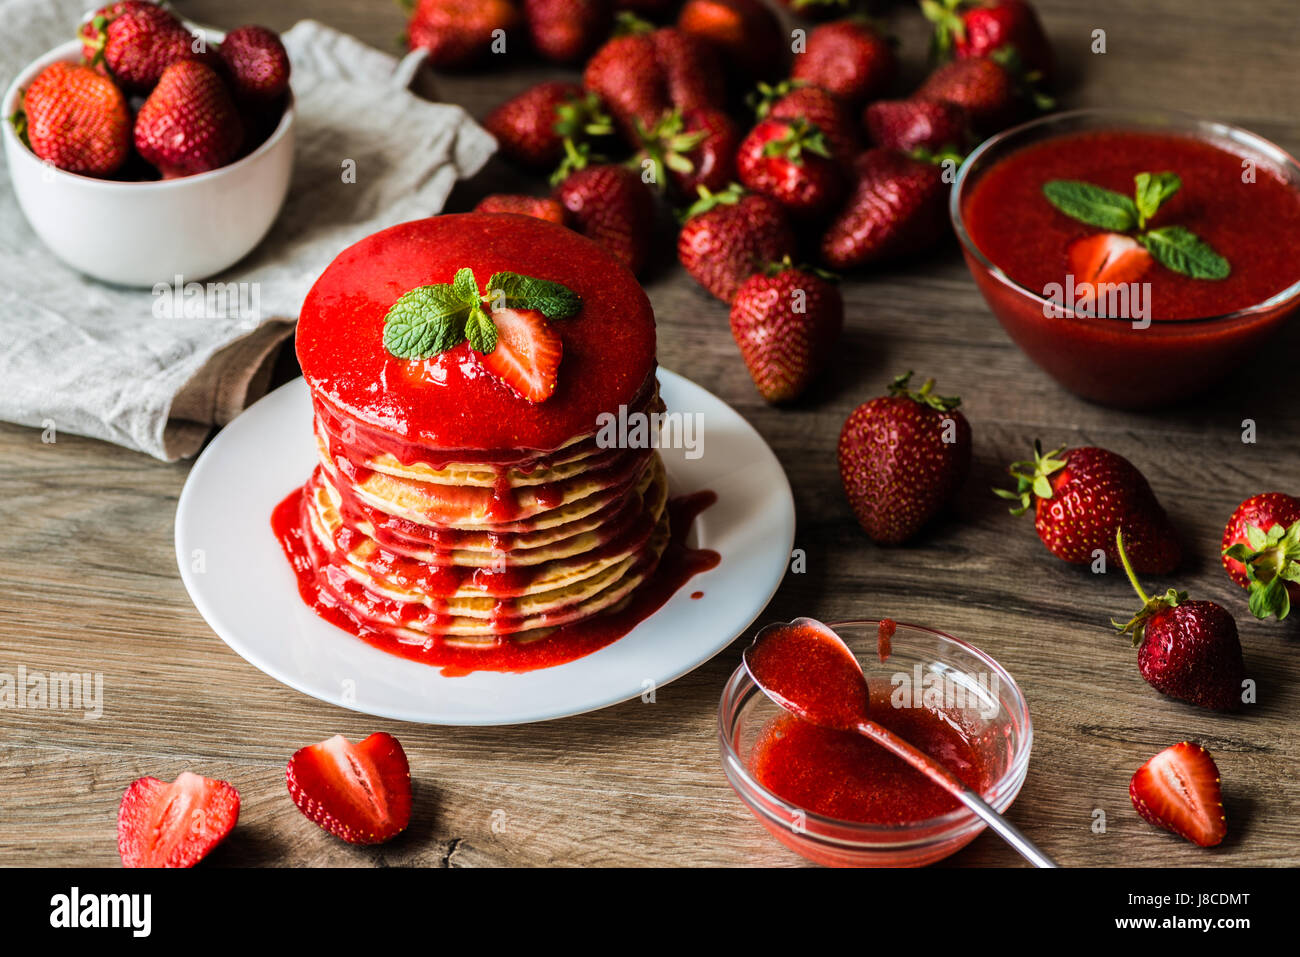 American pancakes and strawberry sauce and bowel with a berry on a wooden background. Shallow depth of field. - Stock Image